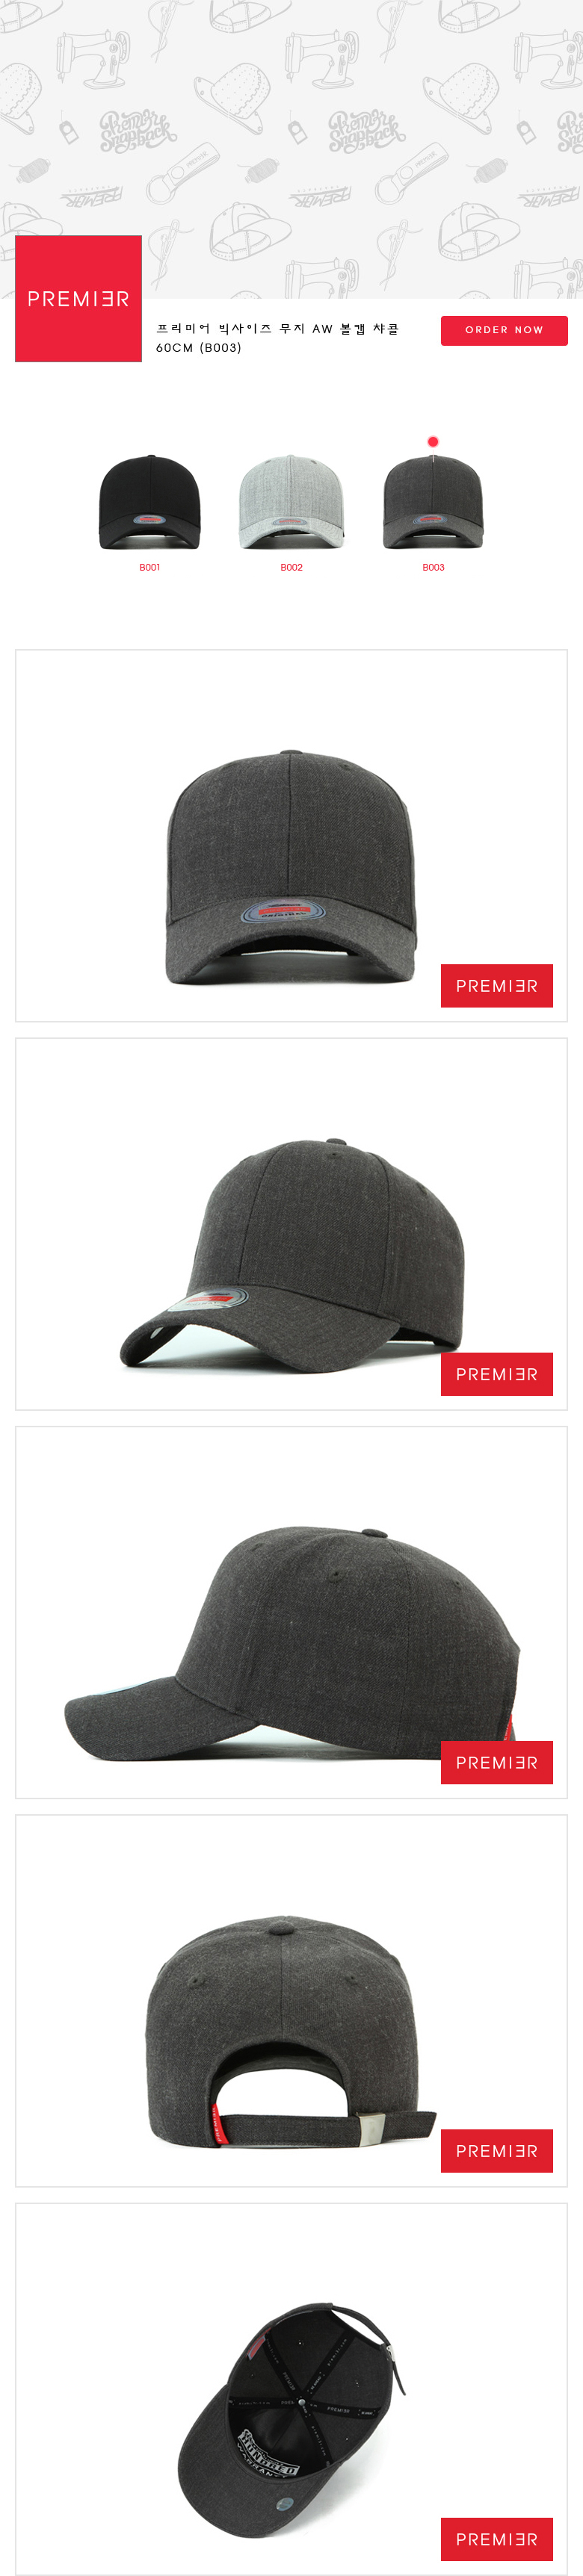 [ PREMIER ] [Premier] Big Size One Color AW Ball Cap Charcoal 60CM (B003)